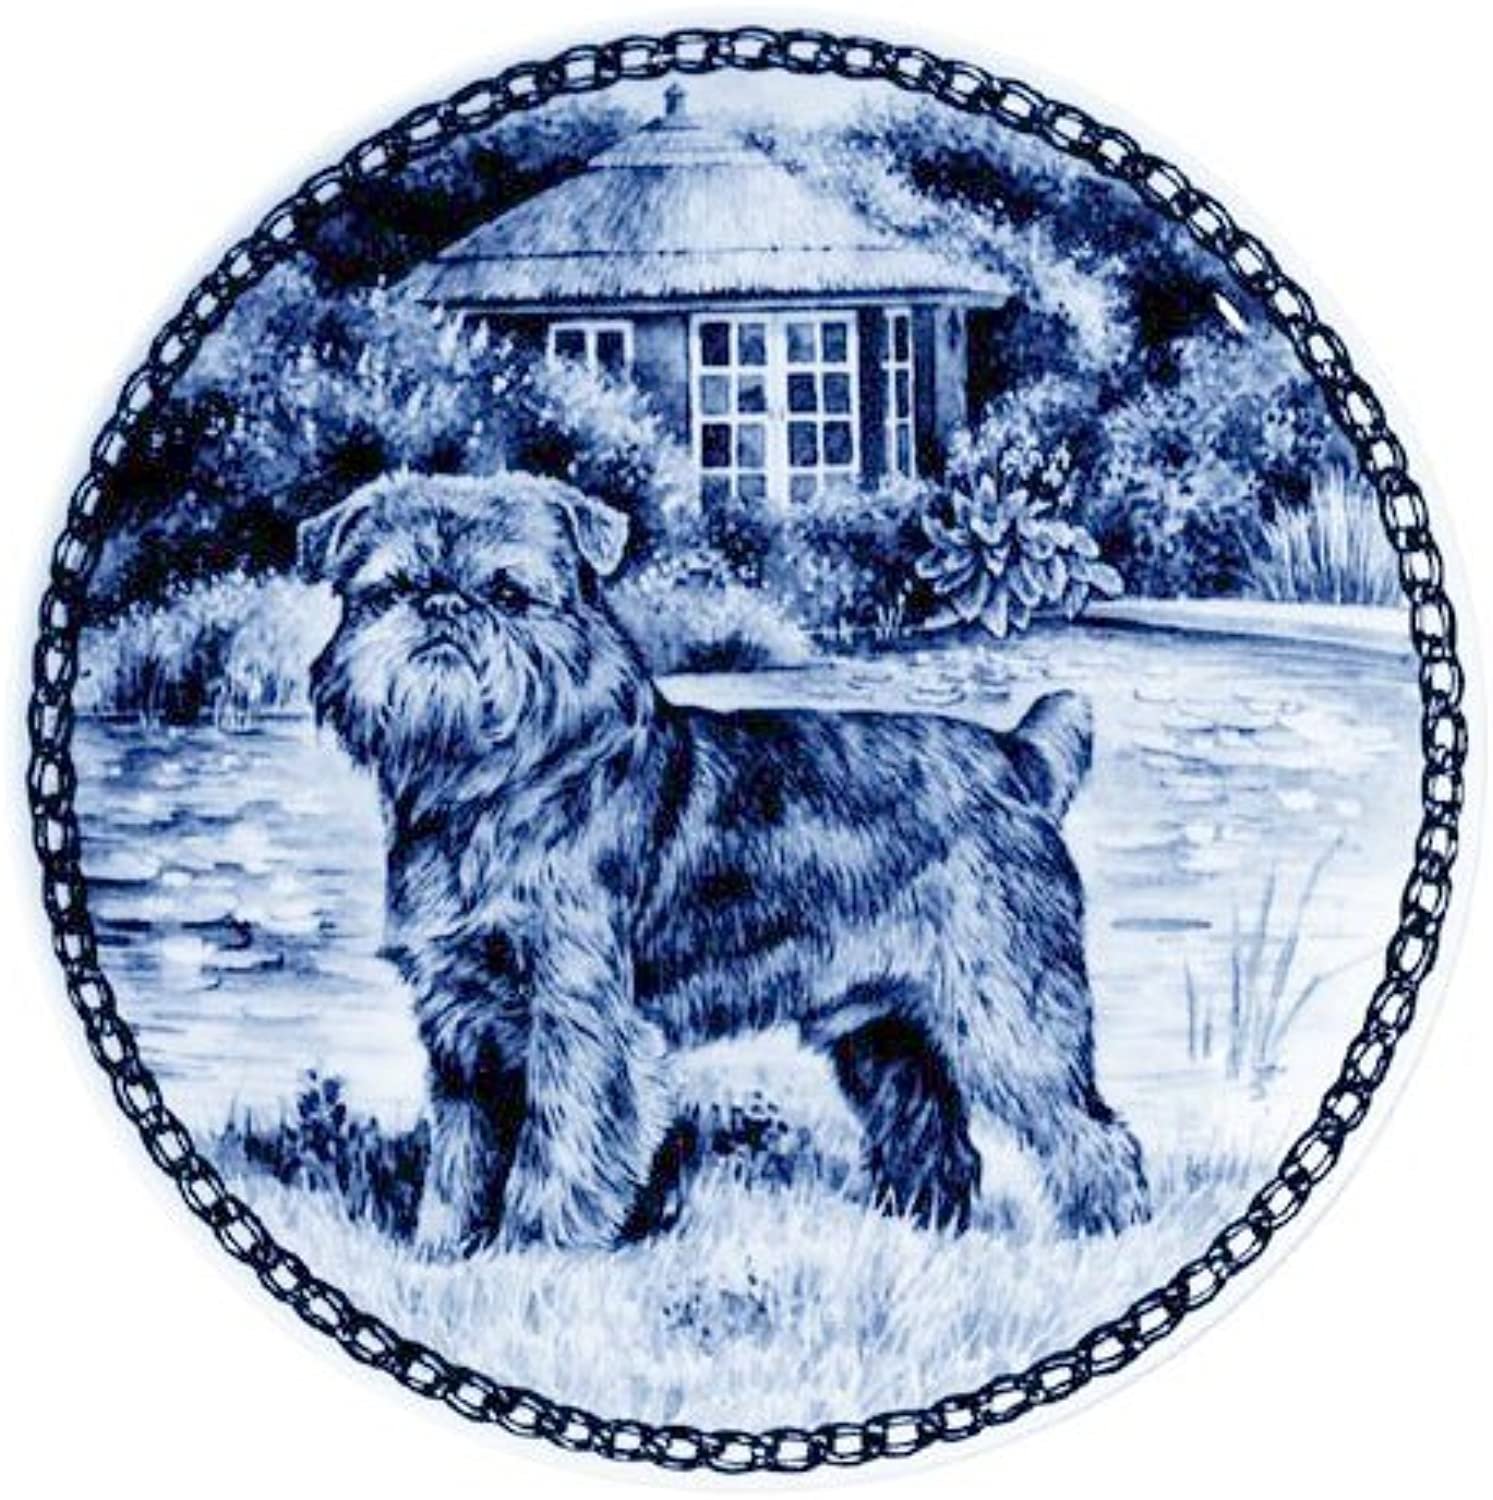 Brussels Griffon   Lekven Design Dog Plate 19.5 cm  7.61 inches Made in Denmark NEW with certificate of origin PLATE  7330